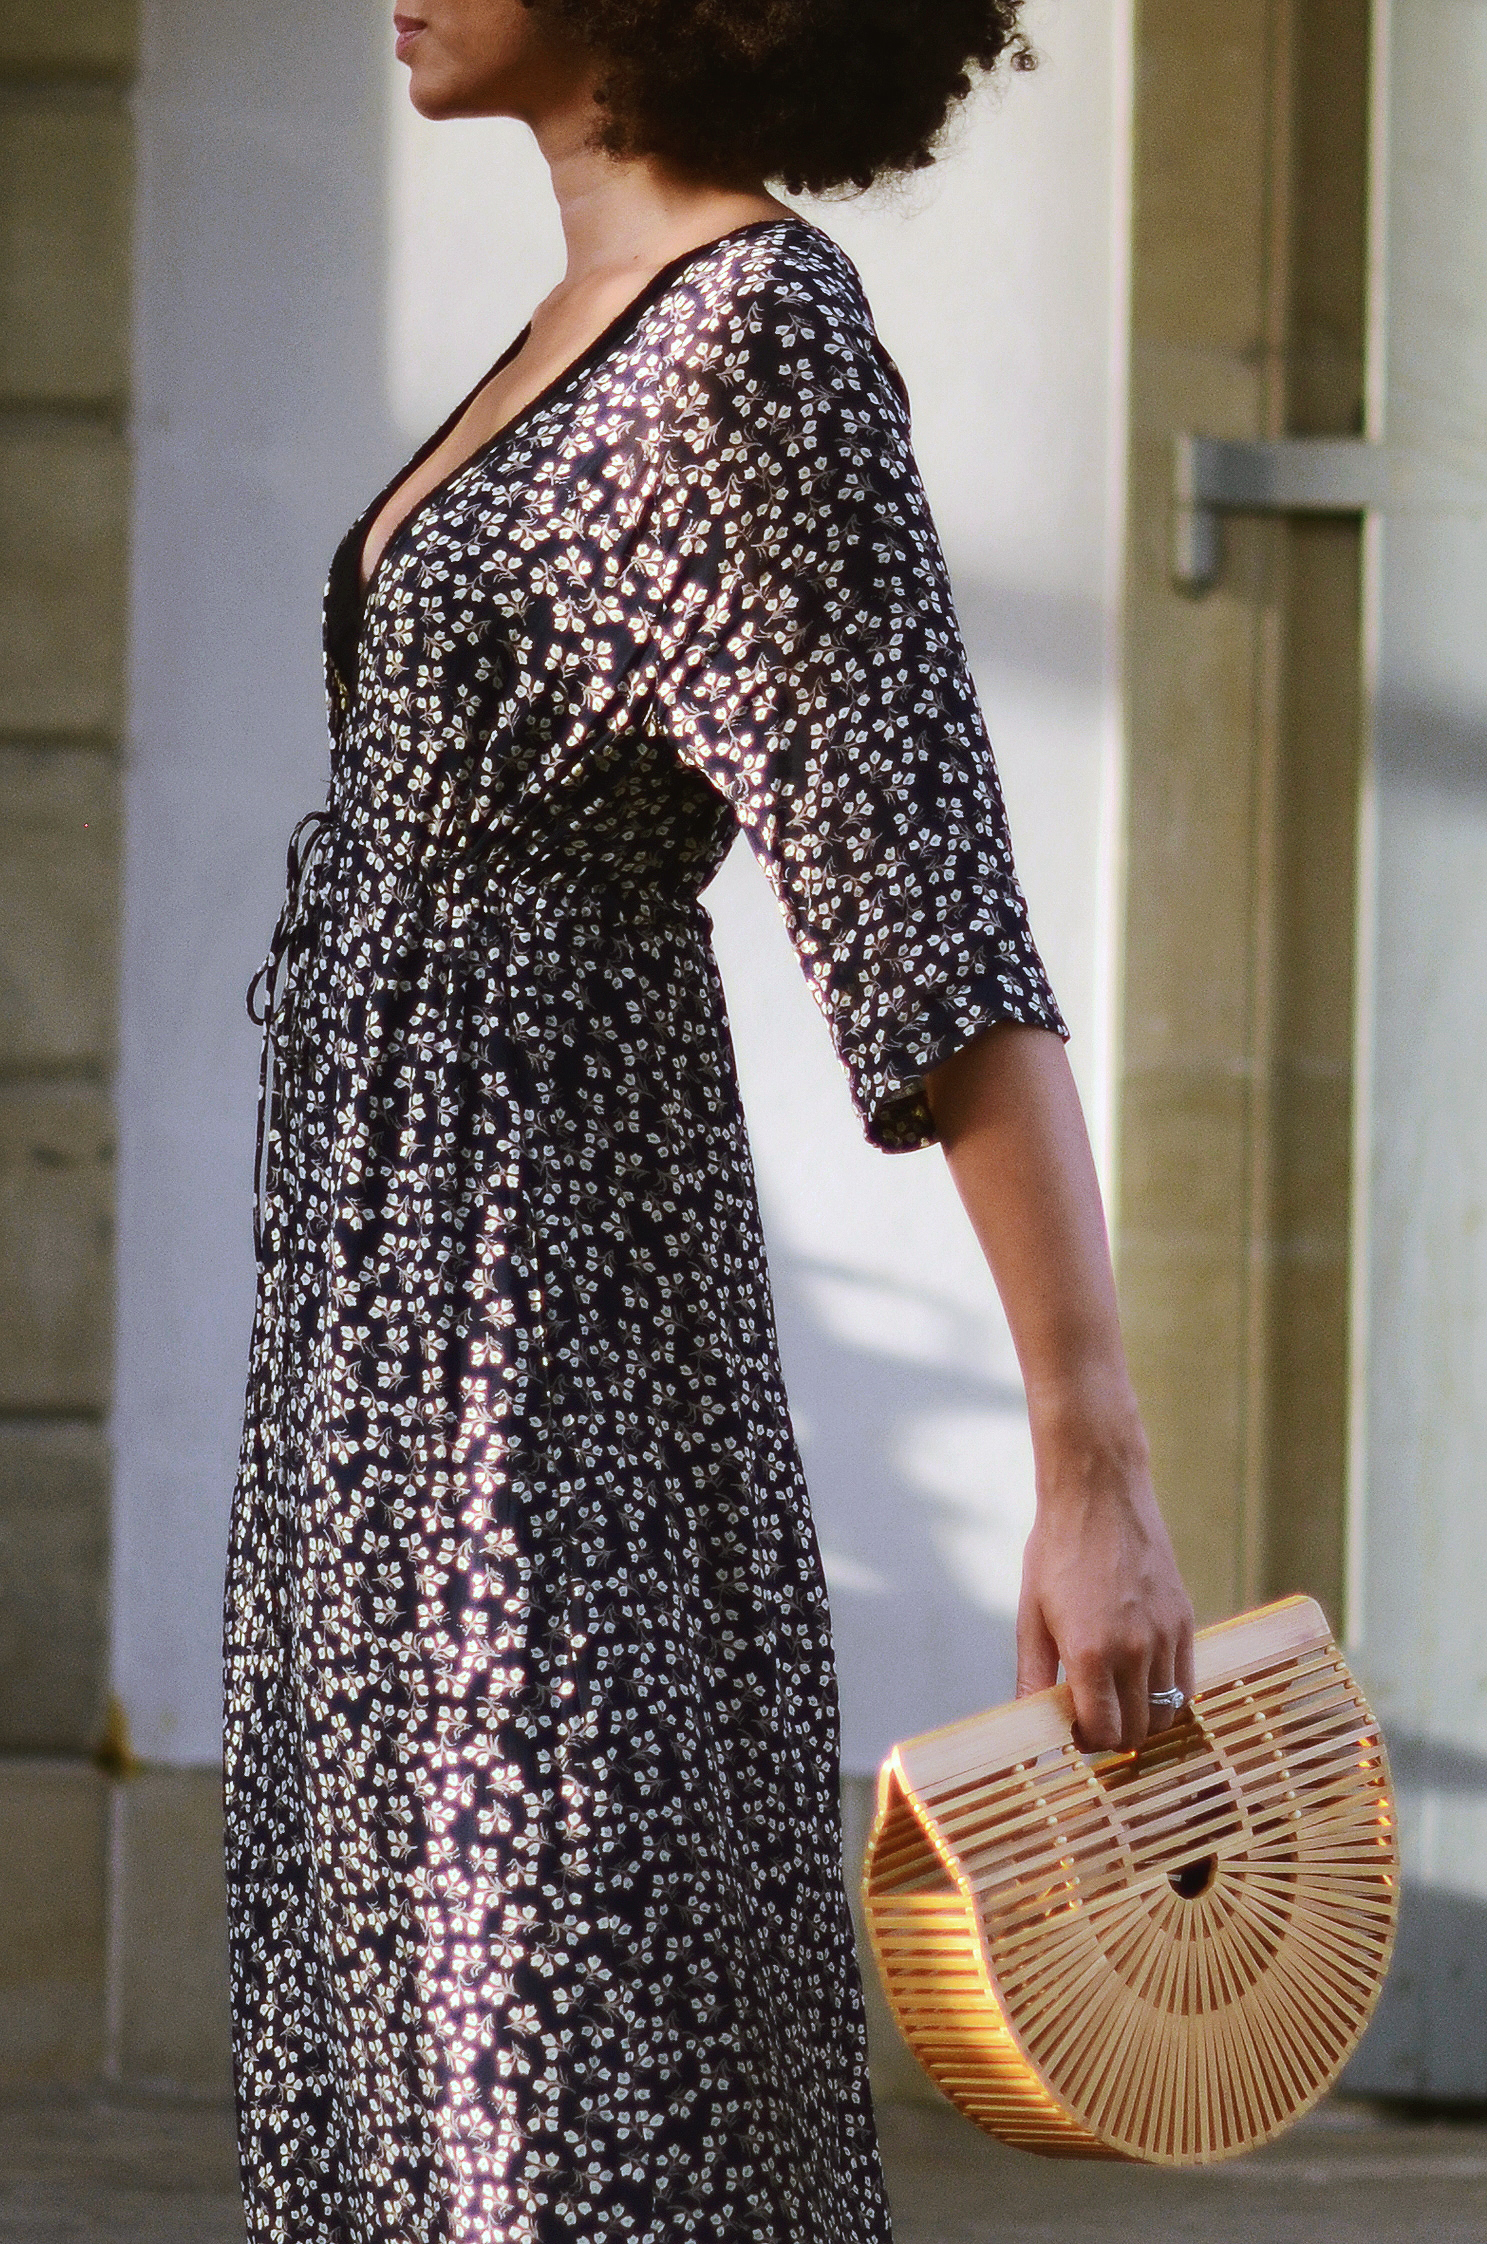 mercredie-blog-mode-geneve-blogueuse-bloggeuse-suisse-swiss-switzerland-robe-ganni-floral-dress-cult-gaia-bag-small-bamboo